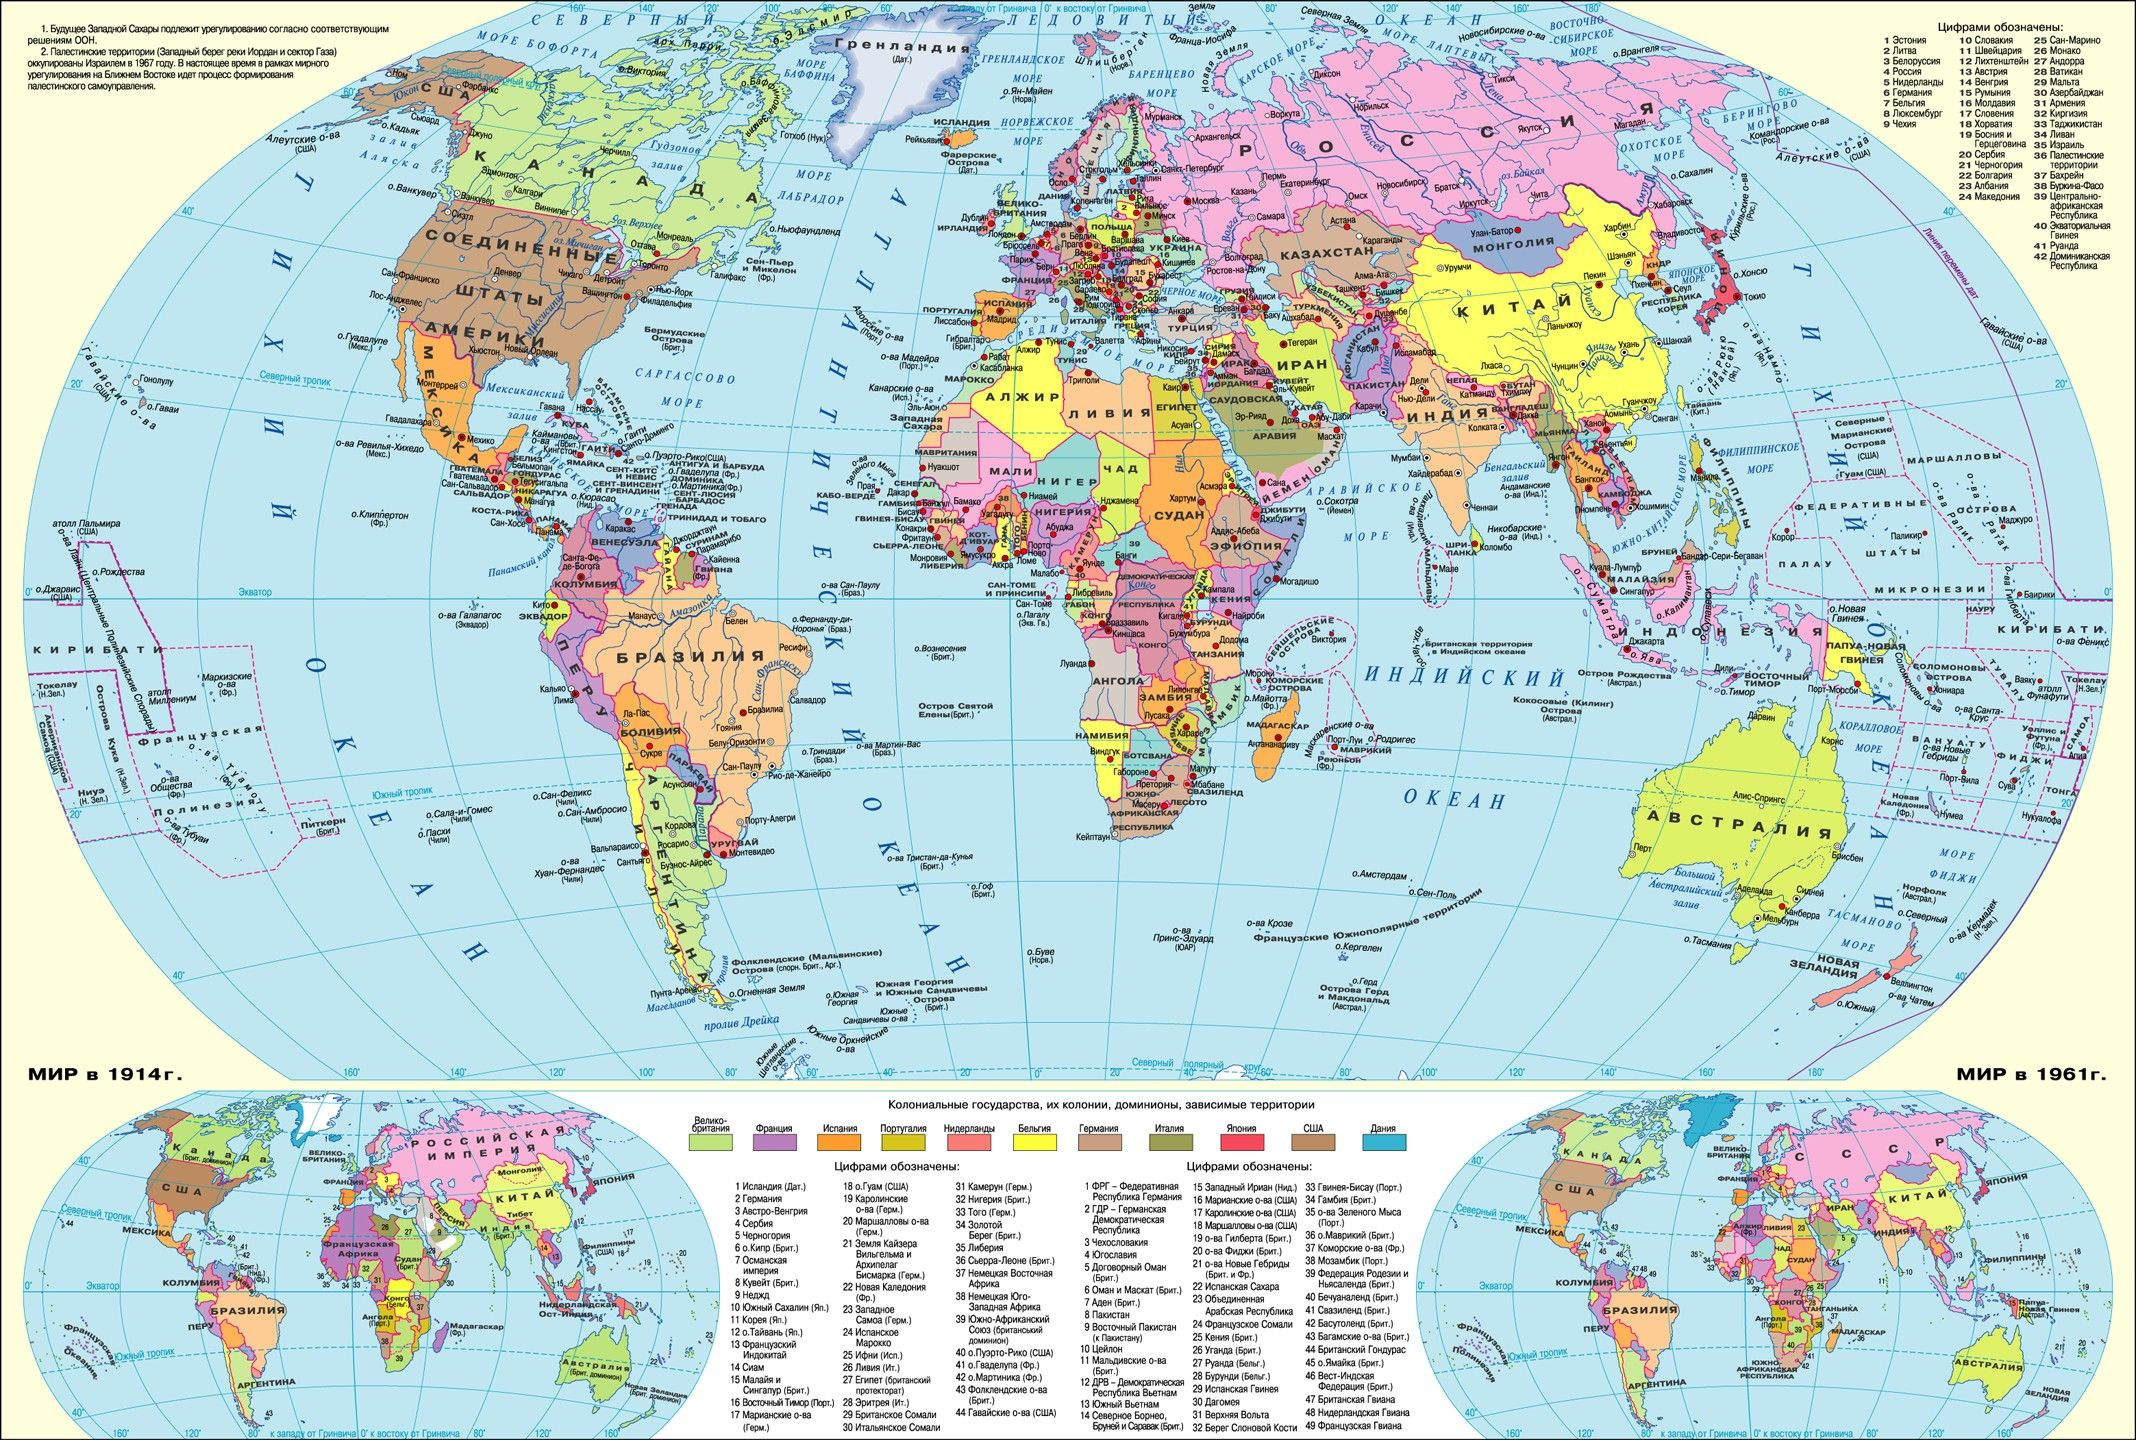 Picture of: Eurasia Map With Countries And Capitals Hd Wallpaper 10 Latest World Map Download High Resolution Full Hd 1920